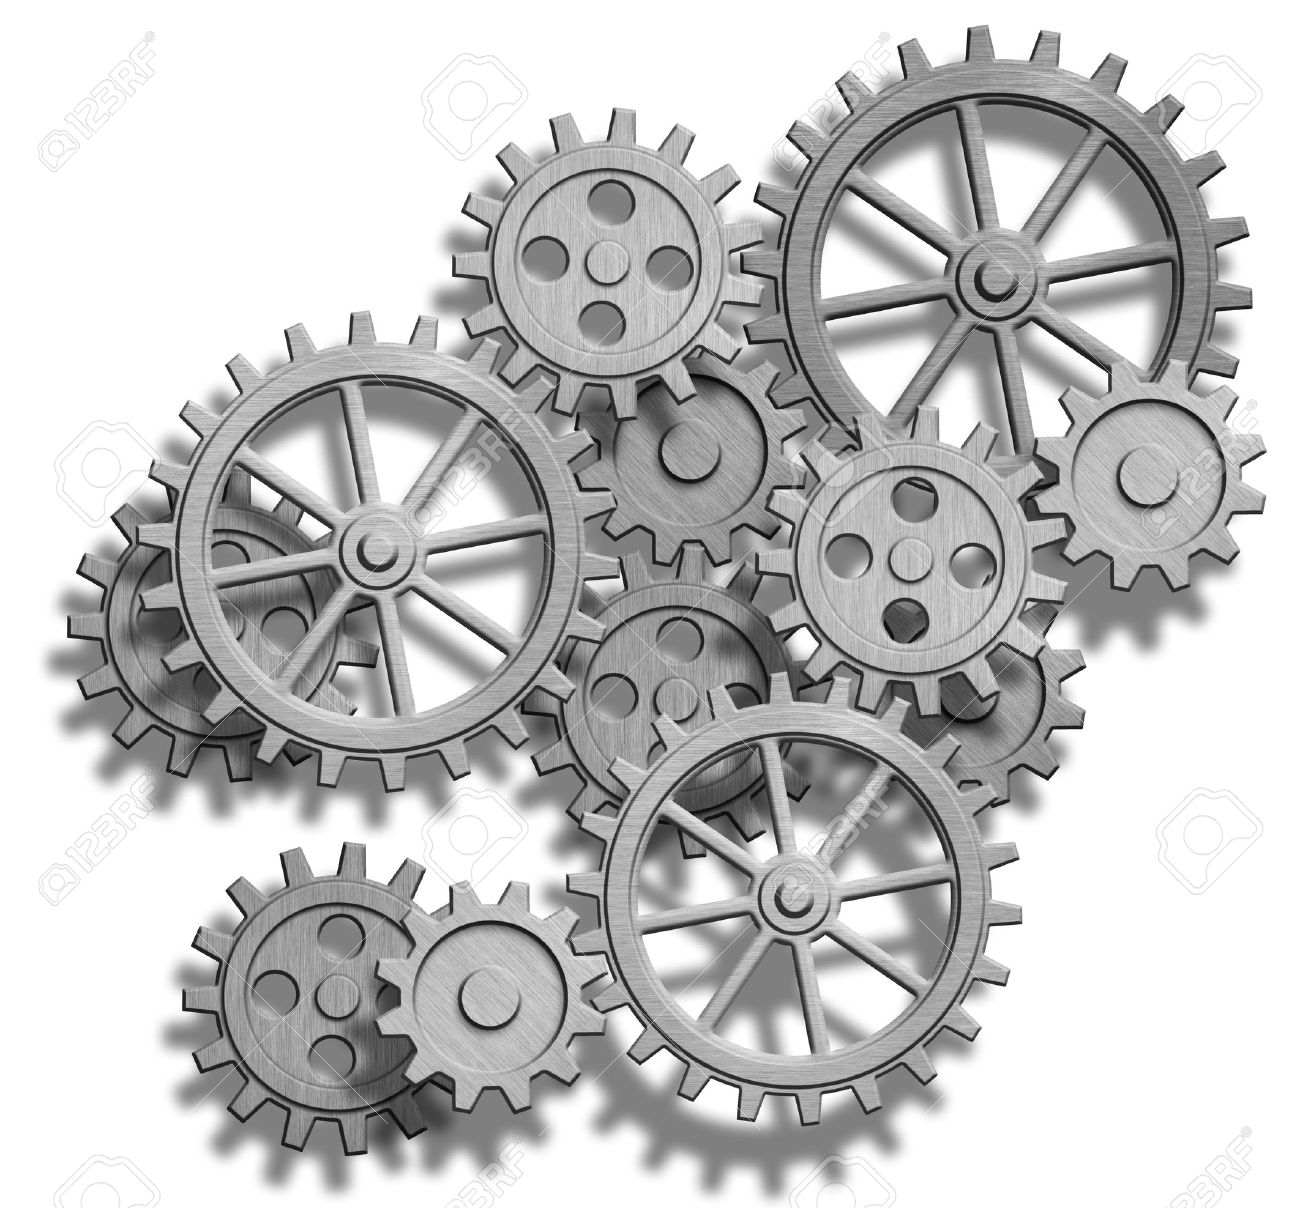 abstract clockwork gears isolated on white stock photo picture and